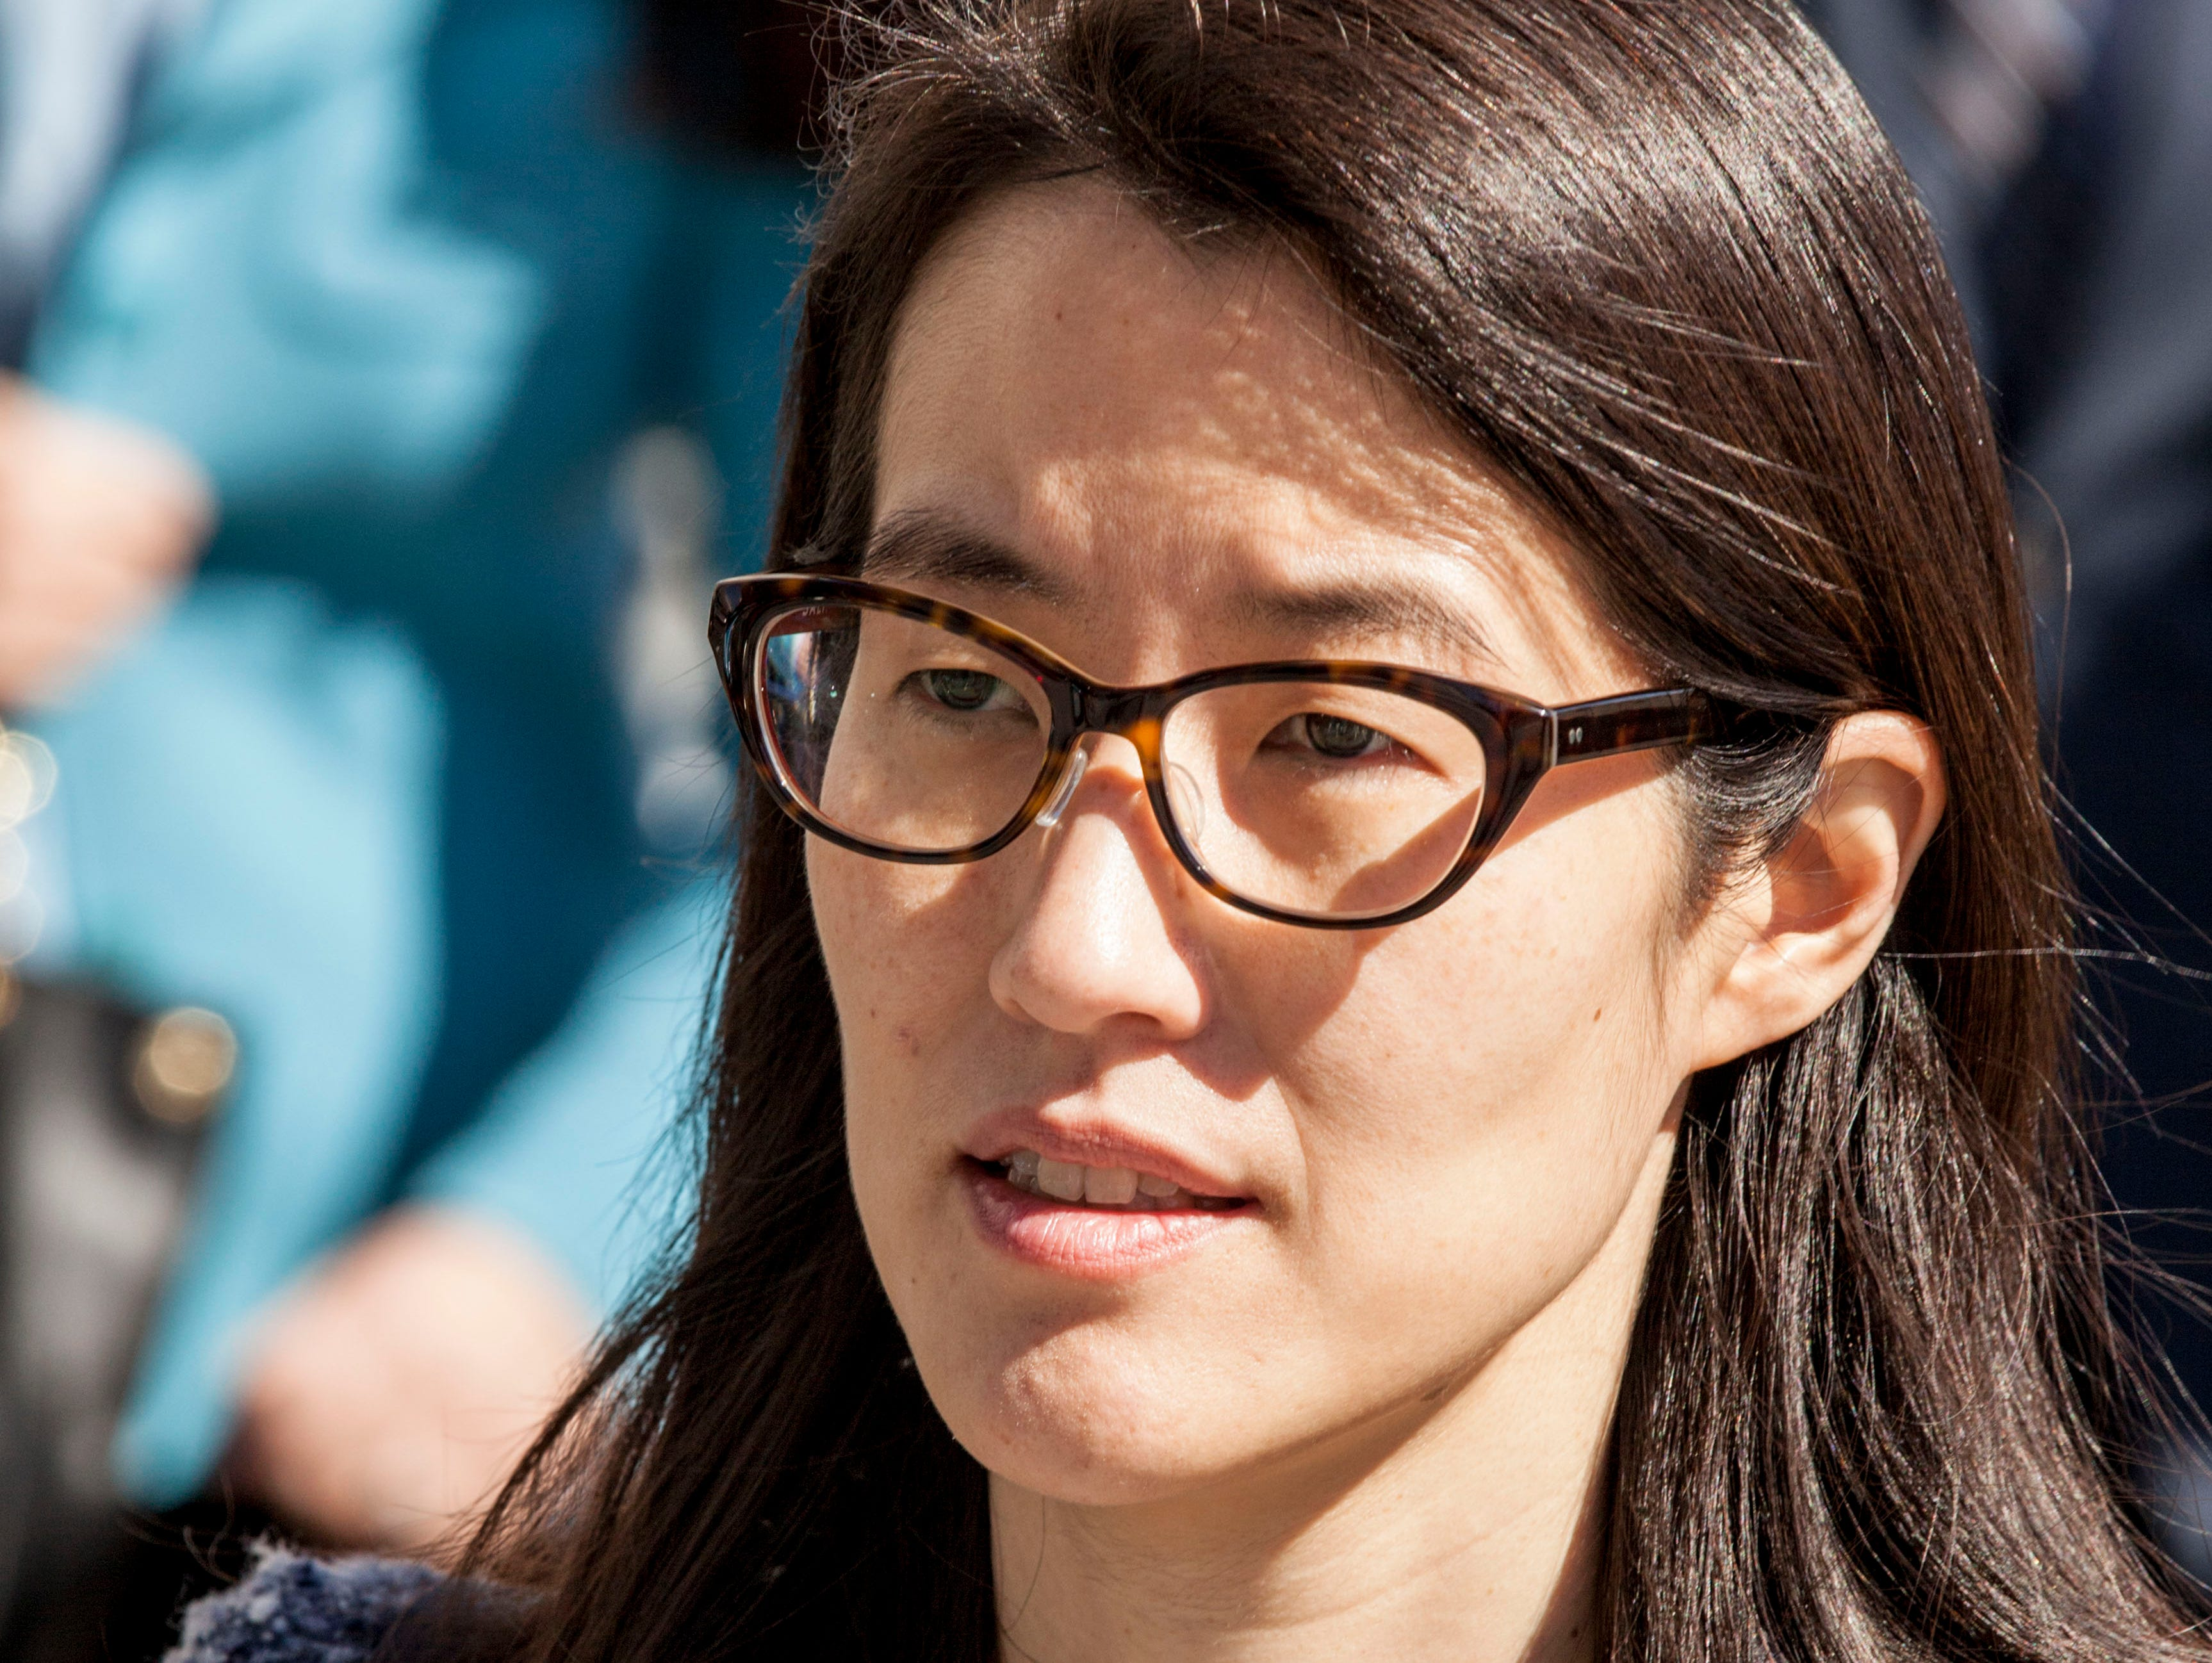 Ellen Pao, a former venture capitalist at Kleiner Perkins Caufield & Byers, arrives at the San Francisco Civic Center Courthouse  on March 3, 2015.